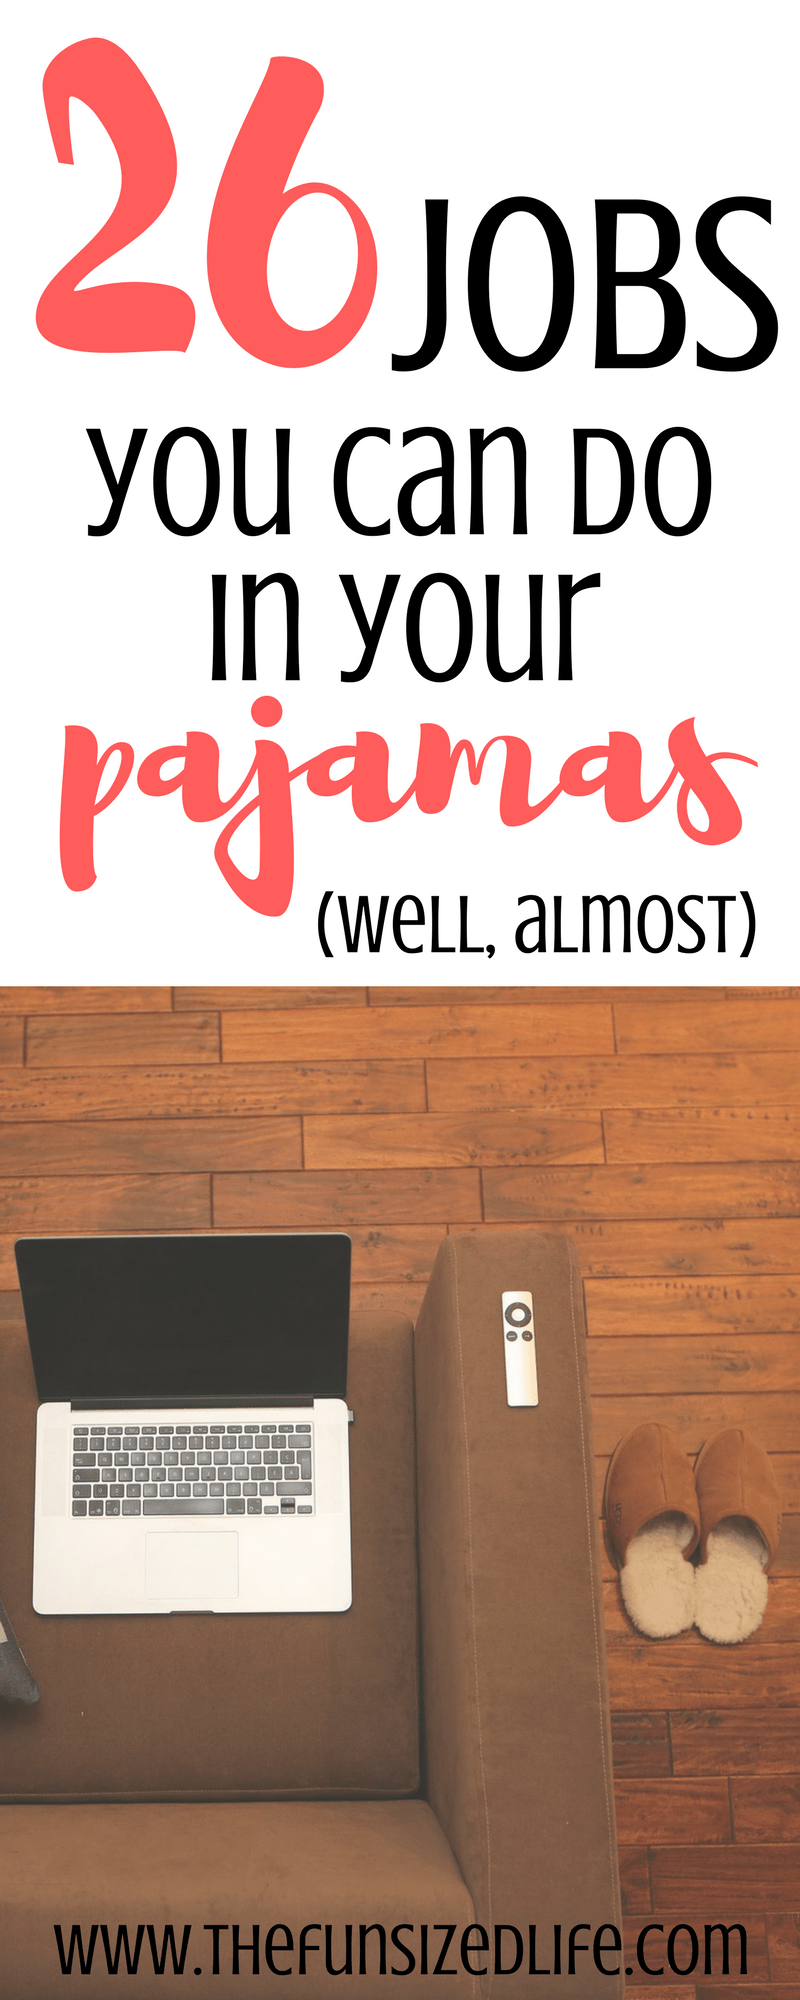 Work from home, or maybe not. But definitely stay in your pajamas more with these 26 jobs you can do in your pajamas! #workfromhome #sidejobs